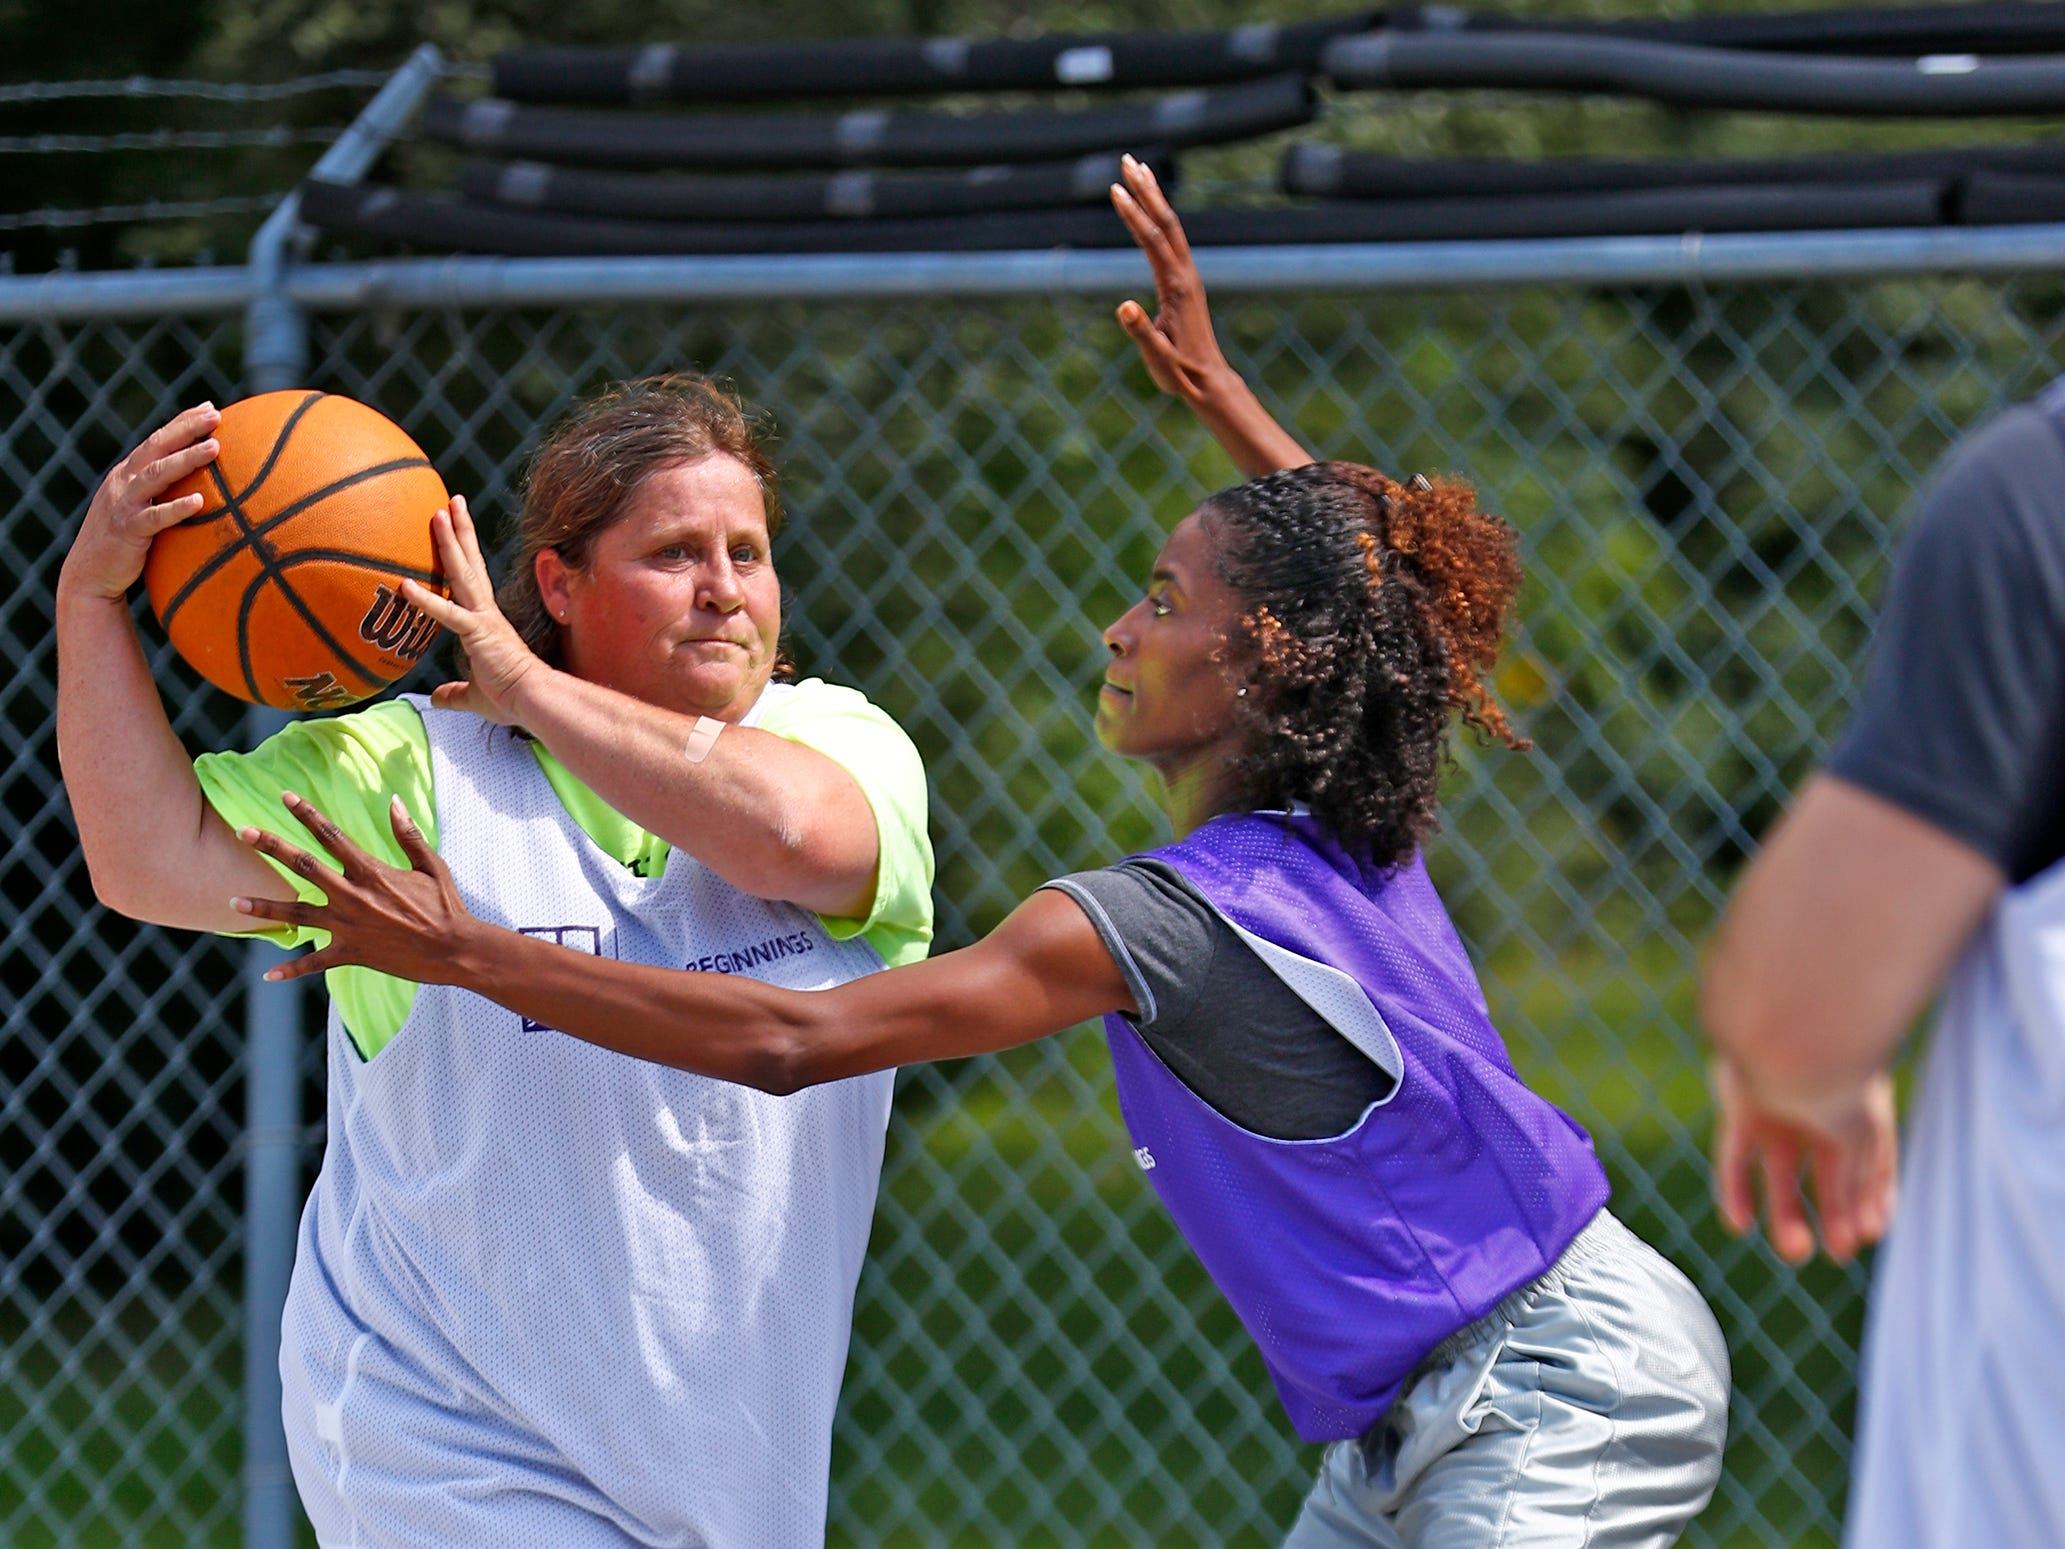 Tonya Surber, left, and Alexaundria Monroe, both with Marion County Probations, play during a basketball game at Goodwill Commercial Services, Wednesday, Sept. 19, 2018.  Goodwill Industries of Central Indiana's New Beginnings hosted the 3-on-3 basketball tournament bringing together participants in New Beginnings, a six-month re-entry program for ex-offenders that works on job and life skills, with representatives from Goodwill, IMPD, the Mayor's office, Marion County Probation department and other services.  The goal is to celebrate the New Beginnings program while breaking down re-entry barriers through basketball.